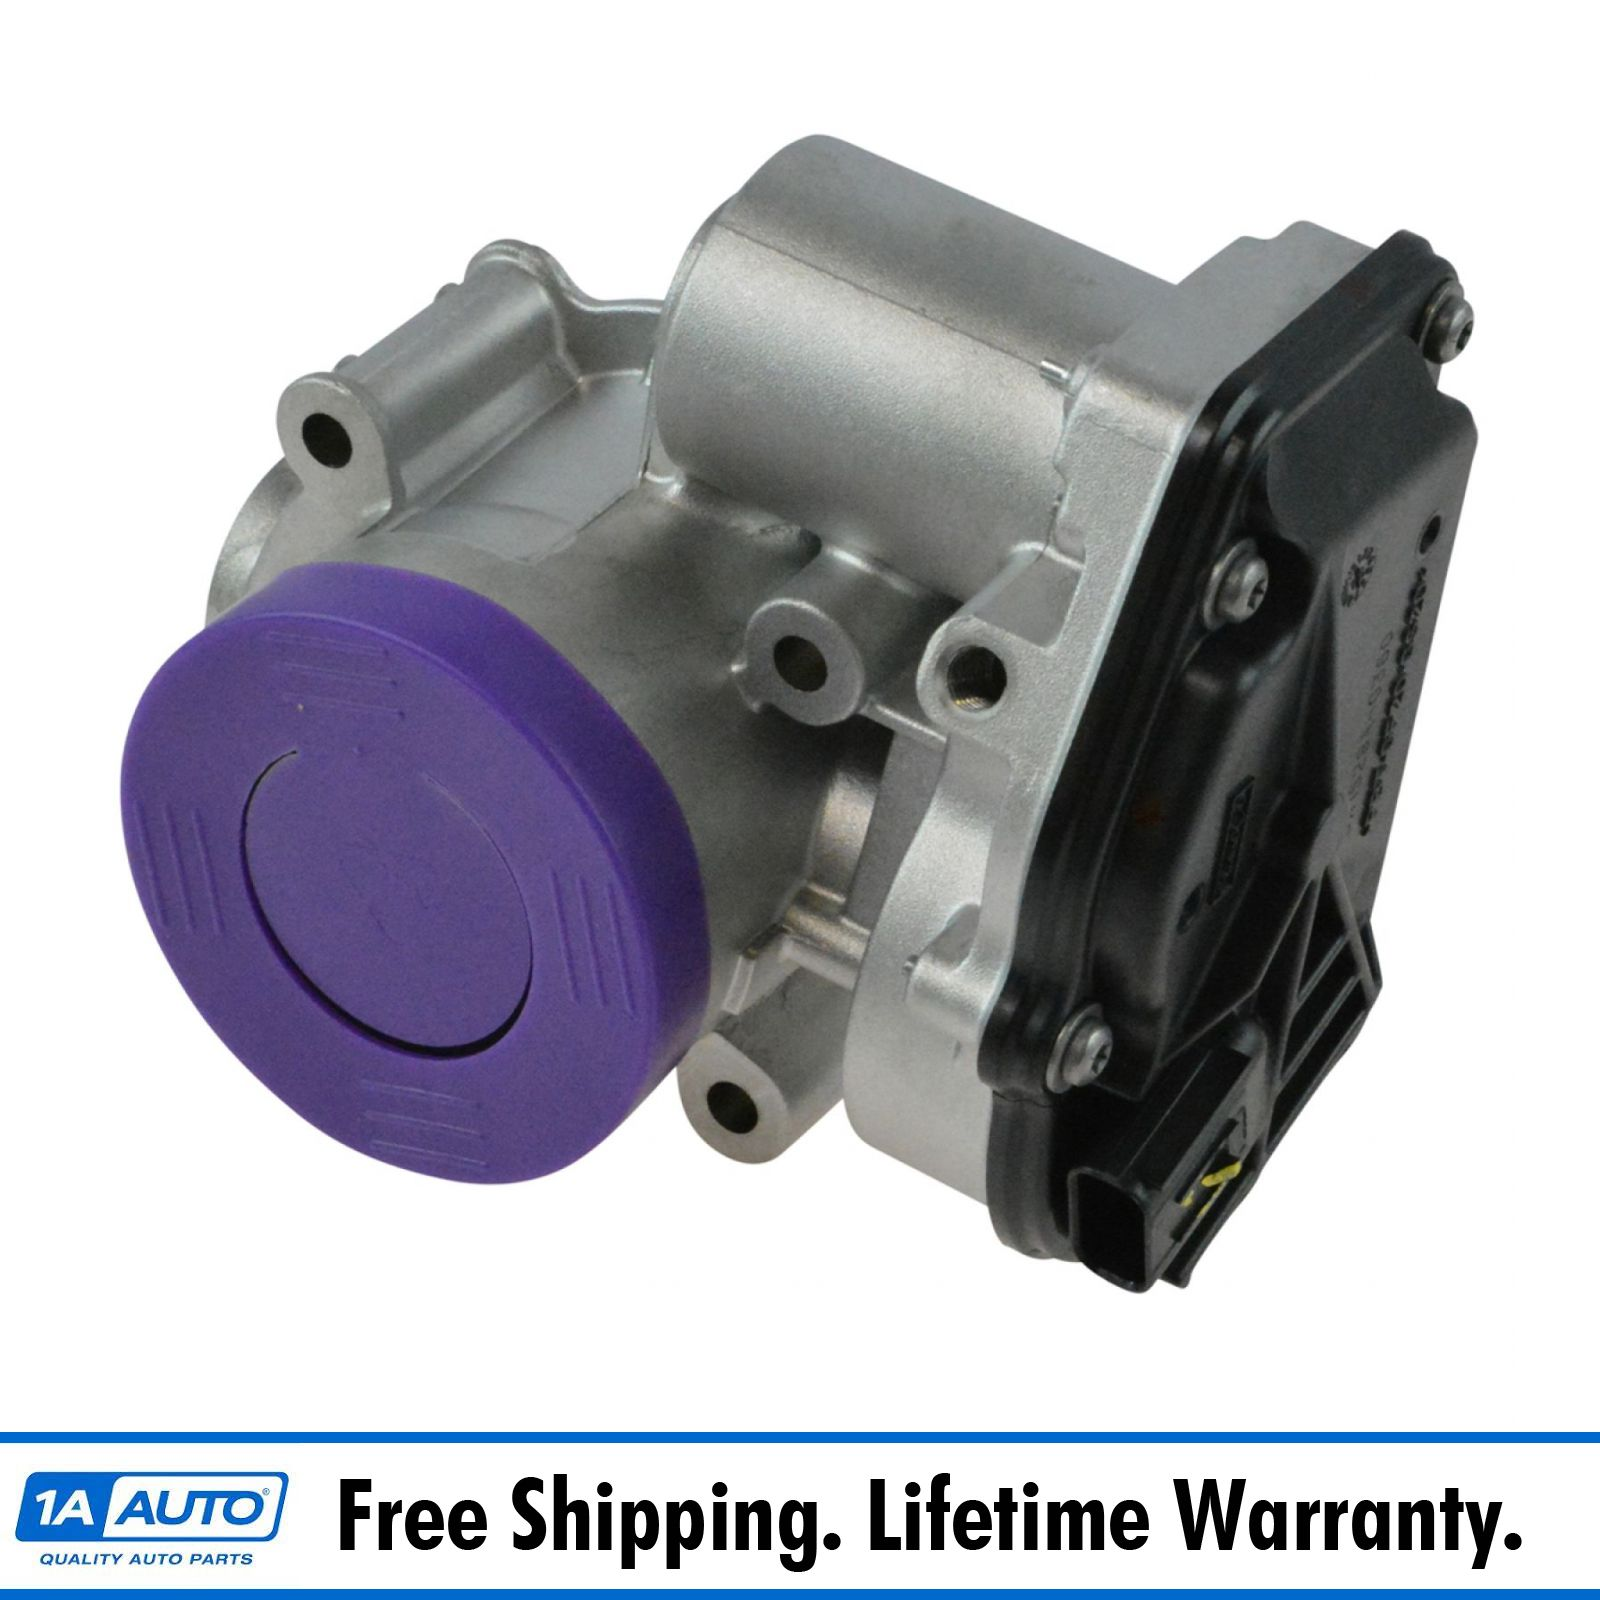 Details about OEM Throttle Body Assembly TBA with Position Sensor TPS for  Ford mercury SUV New